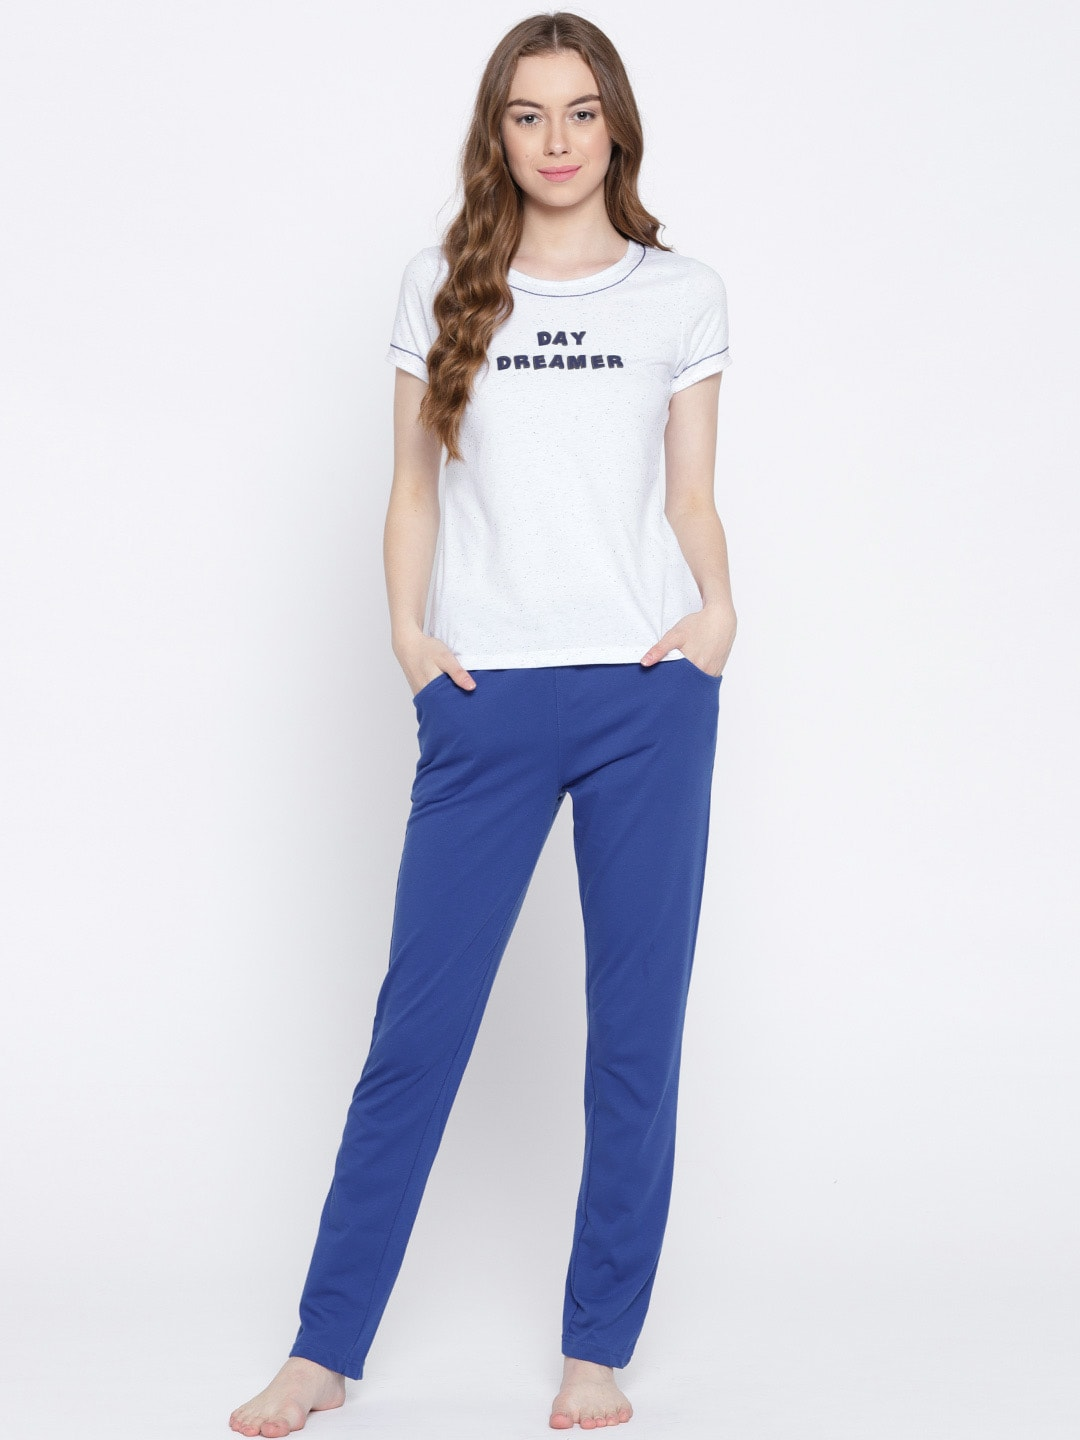 Women Loungewear   Nightwear - Buy Women Nightwear   Loungewear online -  Myntra 5f83b97ce